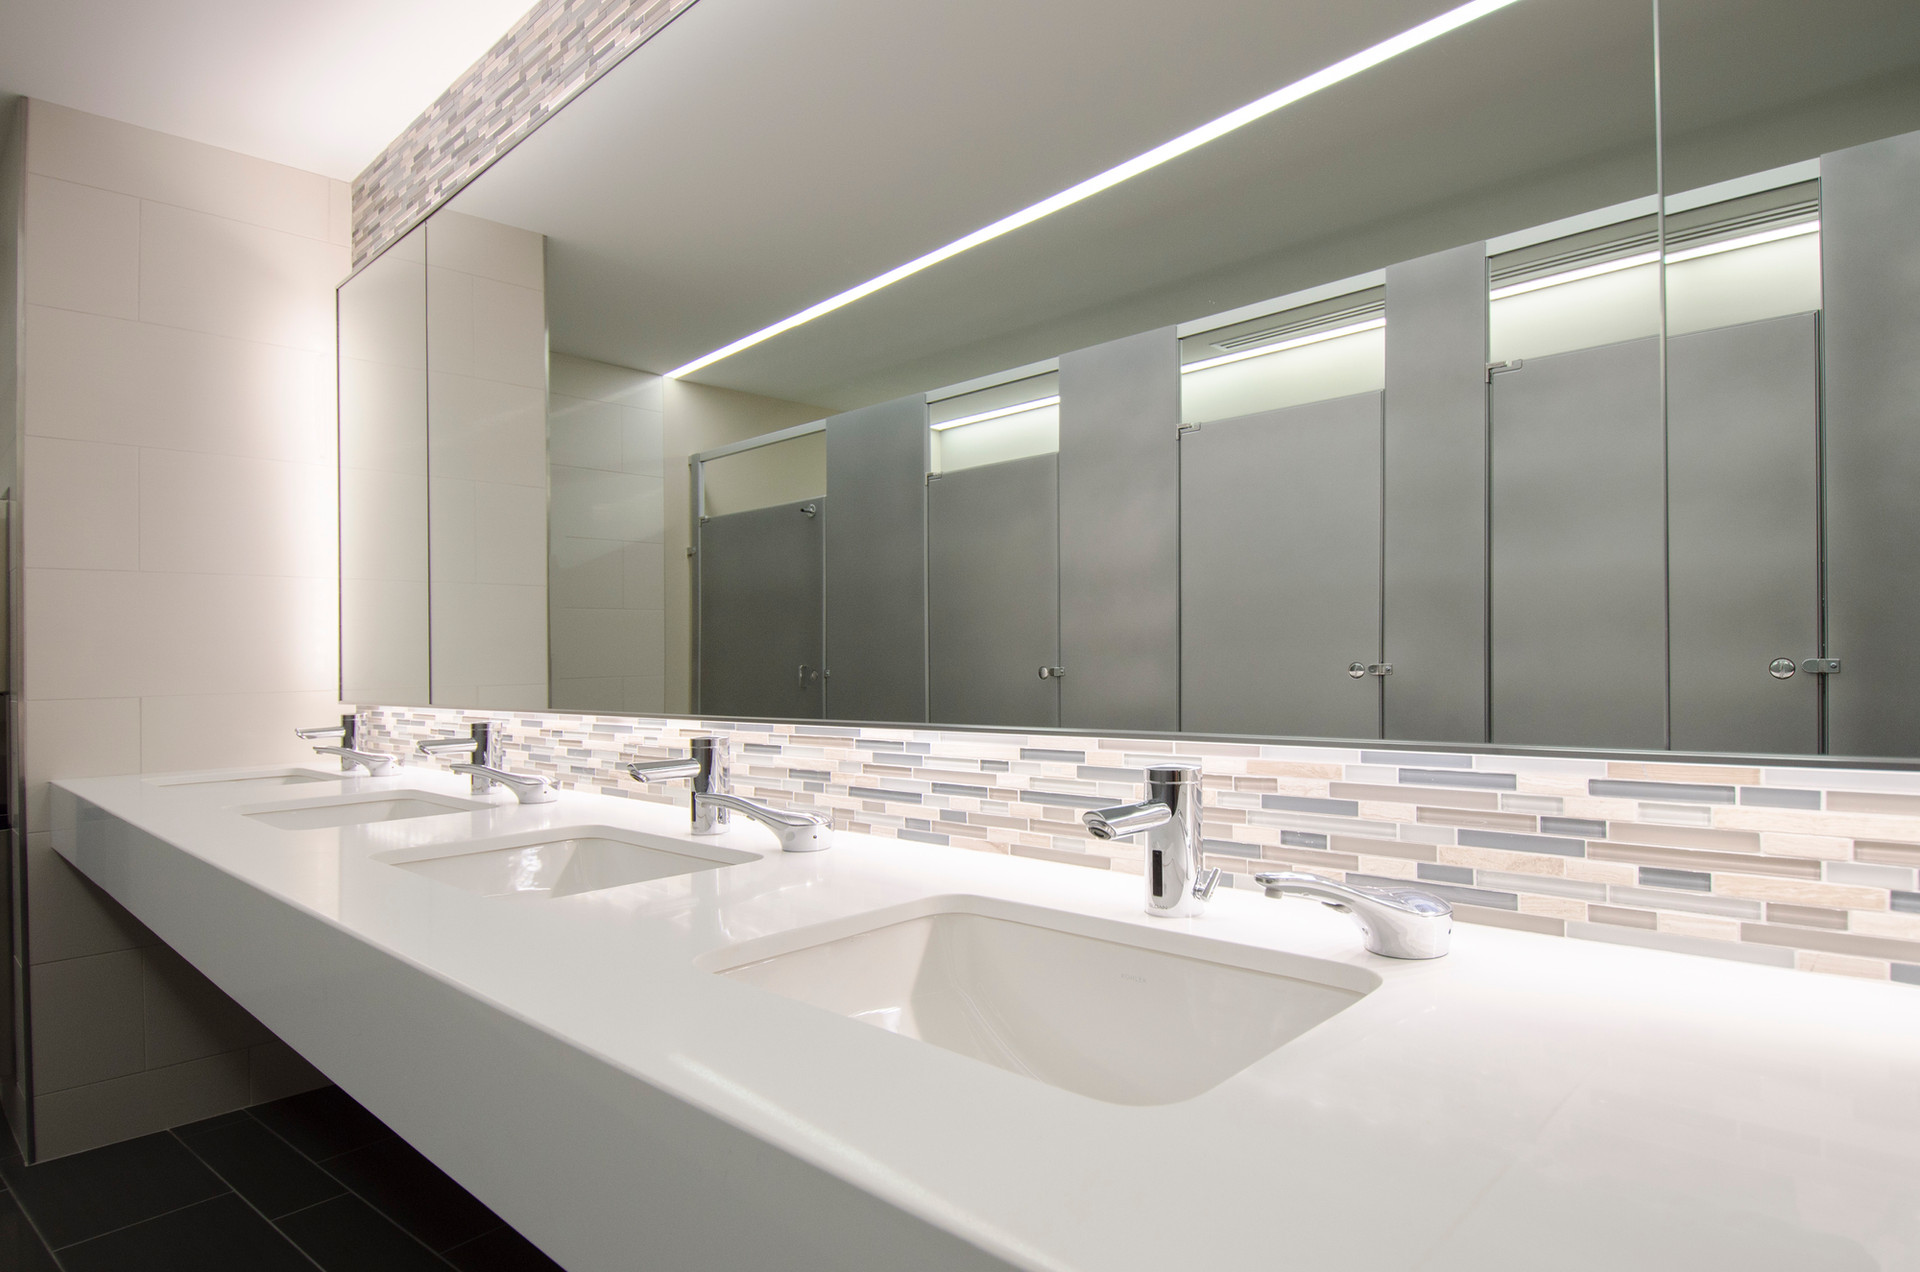 plan-commercial-bathroom-to-energize-the